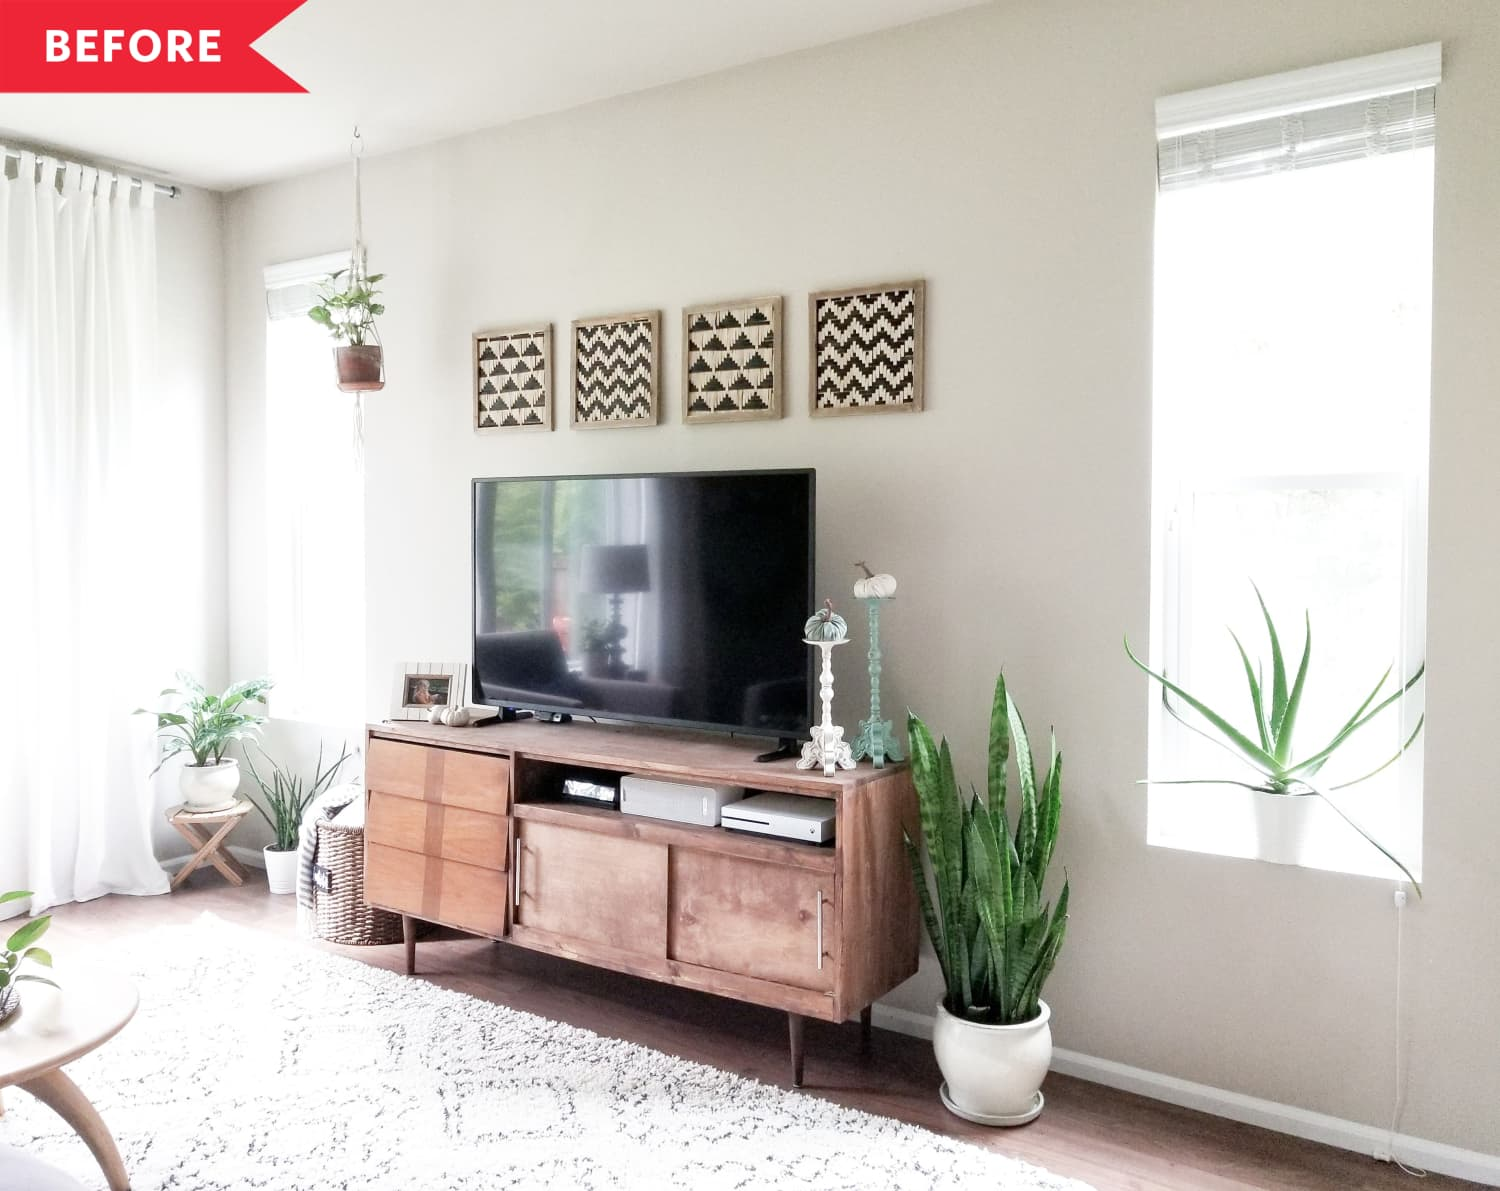 Before and After: A $150, 3-Day Project Gives a Plain Living Room Some Wow